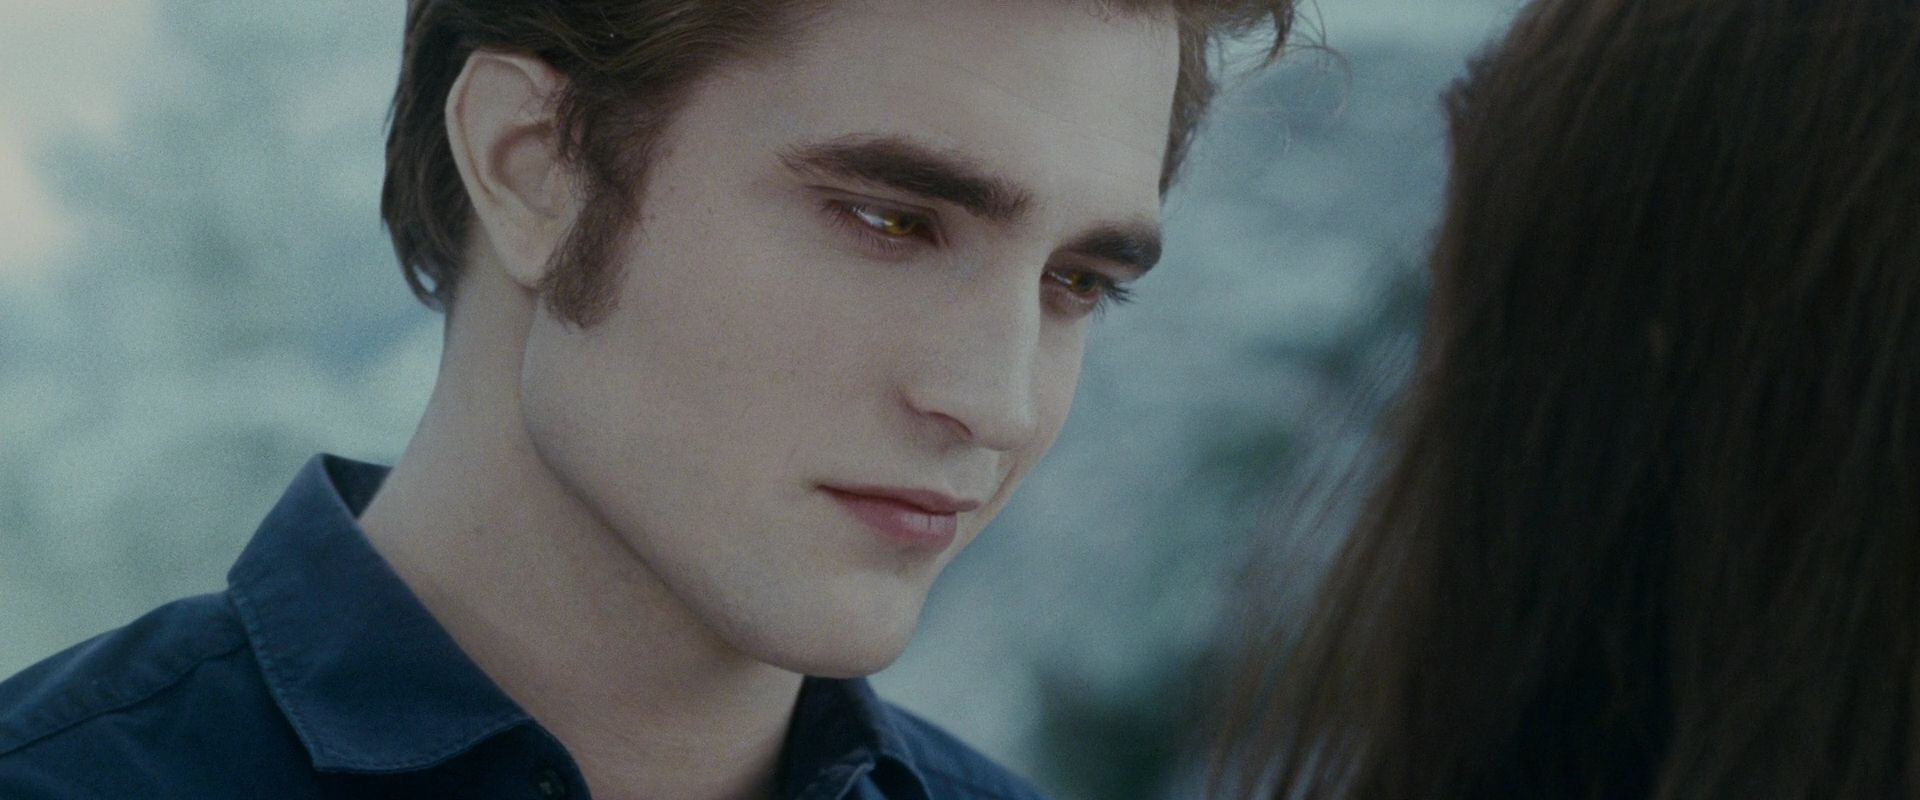 Edward Cullen - Edward Cullen Photo (18085346) - Fanpop